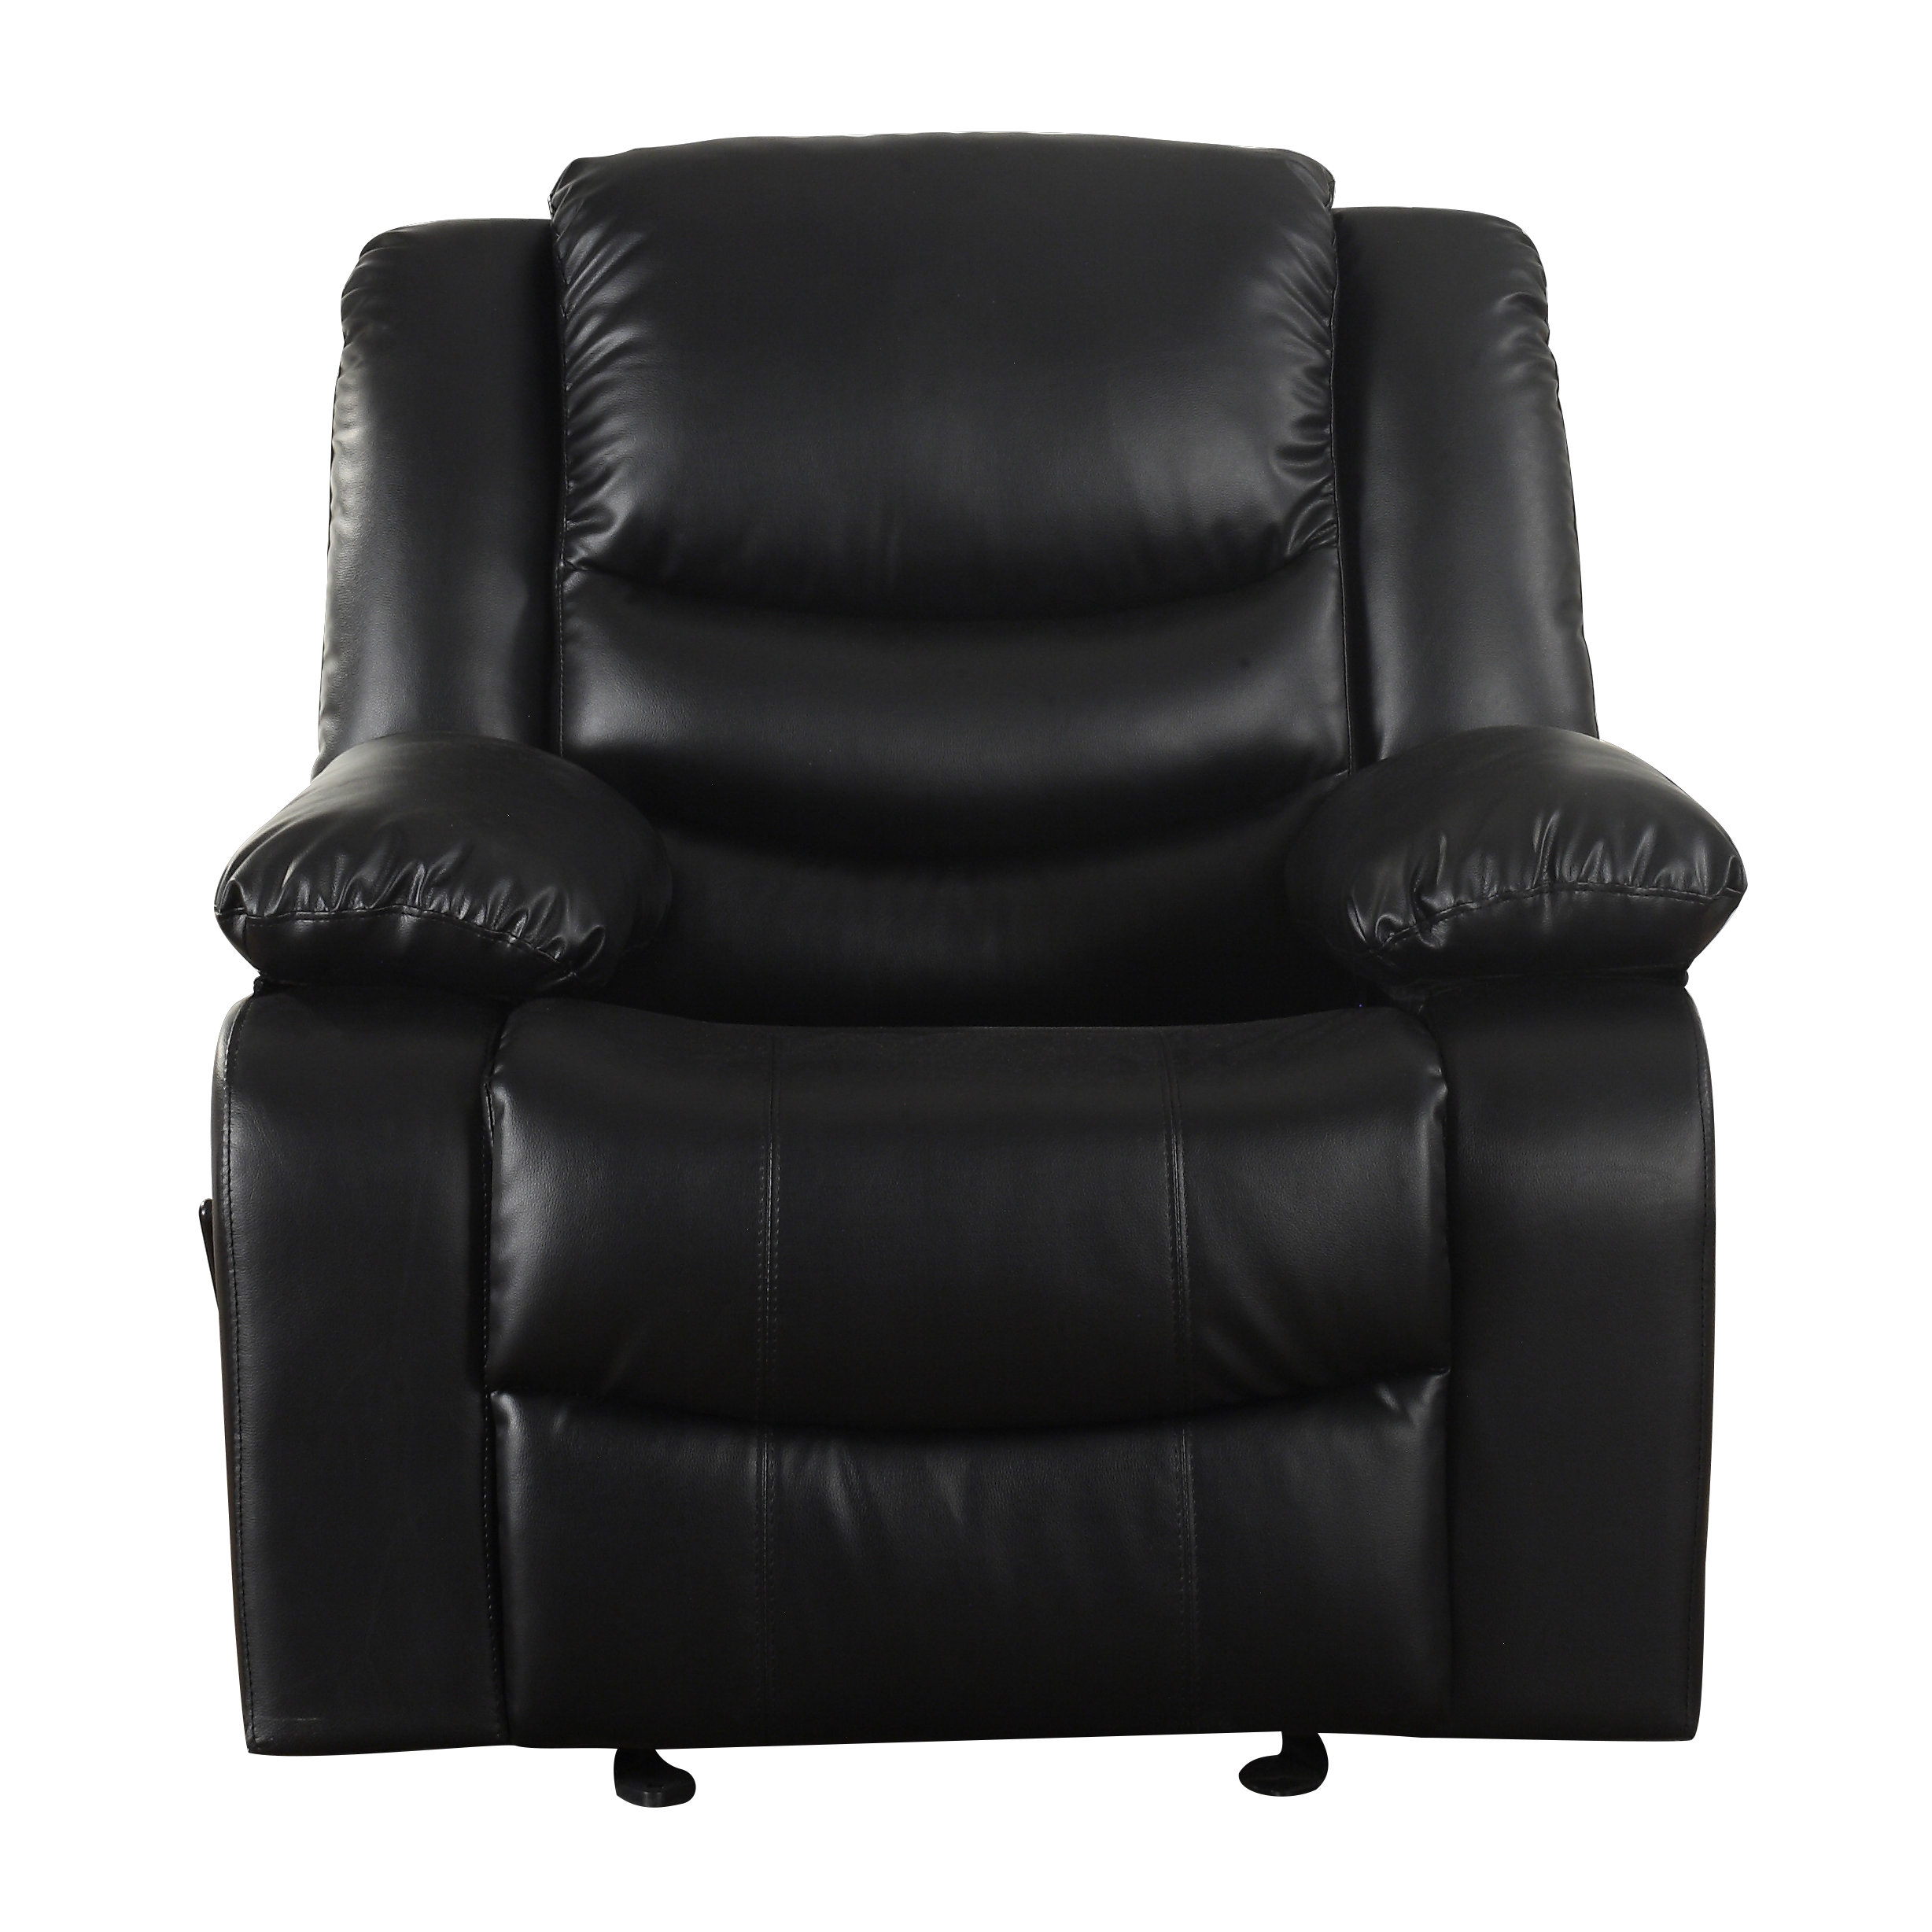 Madison Home Usa Classic Overstuffed Manual Rocker Recliner Regarding Dale Iii Polyurethane Swivel Glider Recliners (Image 16 of 25)